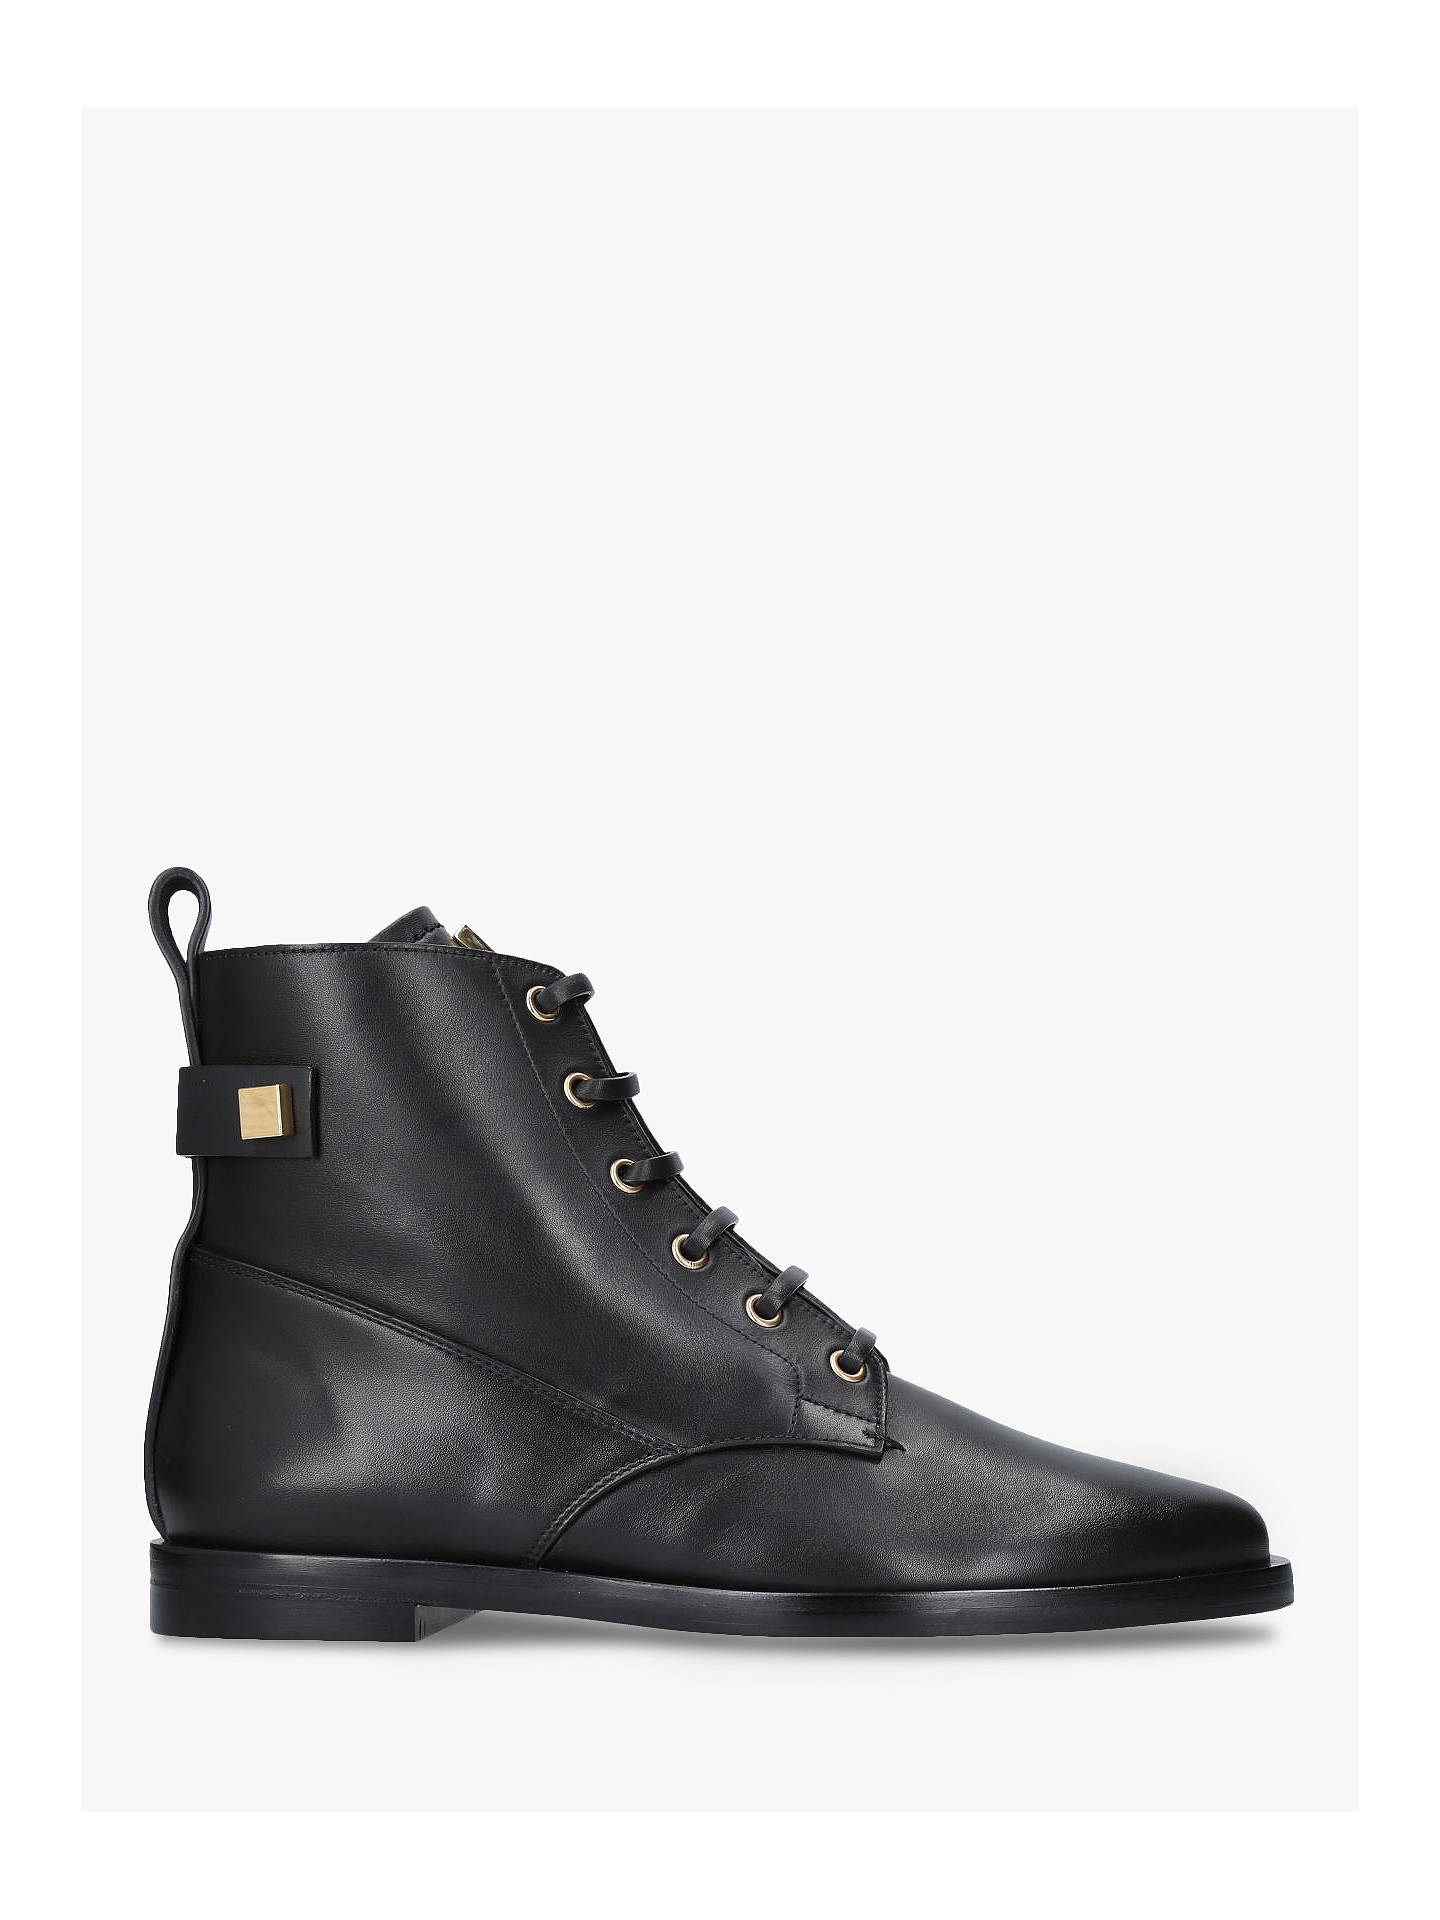 Buy Stuart Weitzman Ryder Lace Up Ankle Boots, Black Leather, 2 Online at johnlewis.com